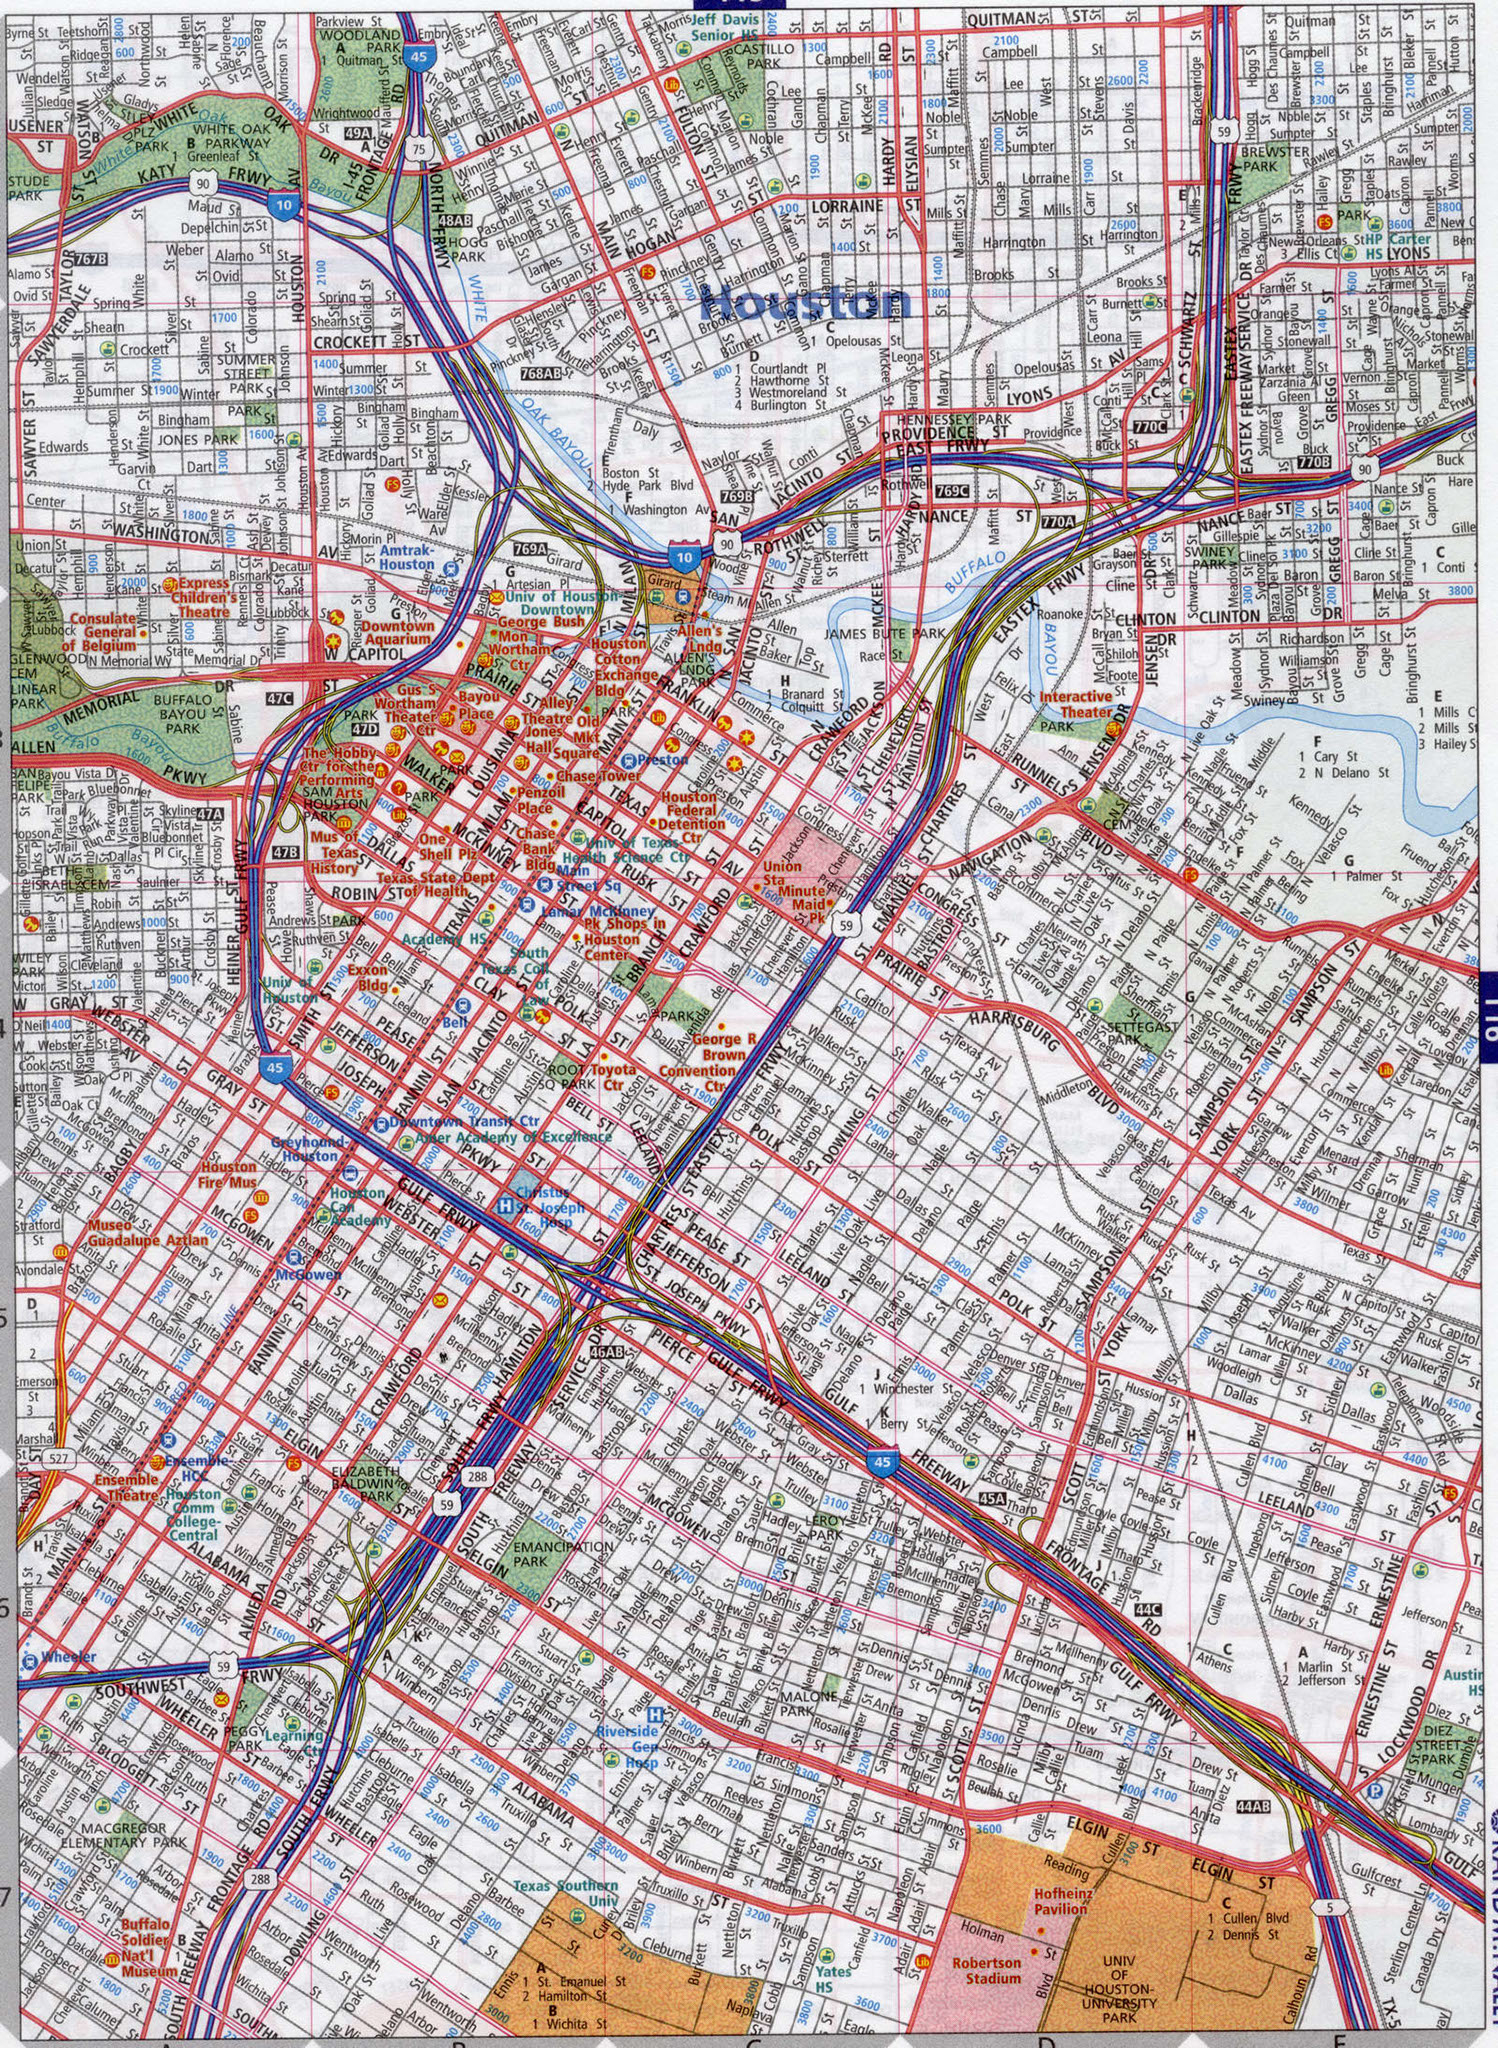 Street Map Of Houston Texas And Travel Information | Download Free - Street Map Of Houston Texas